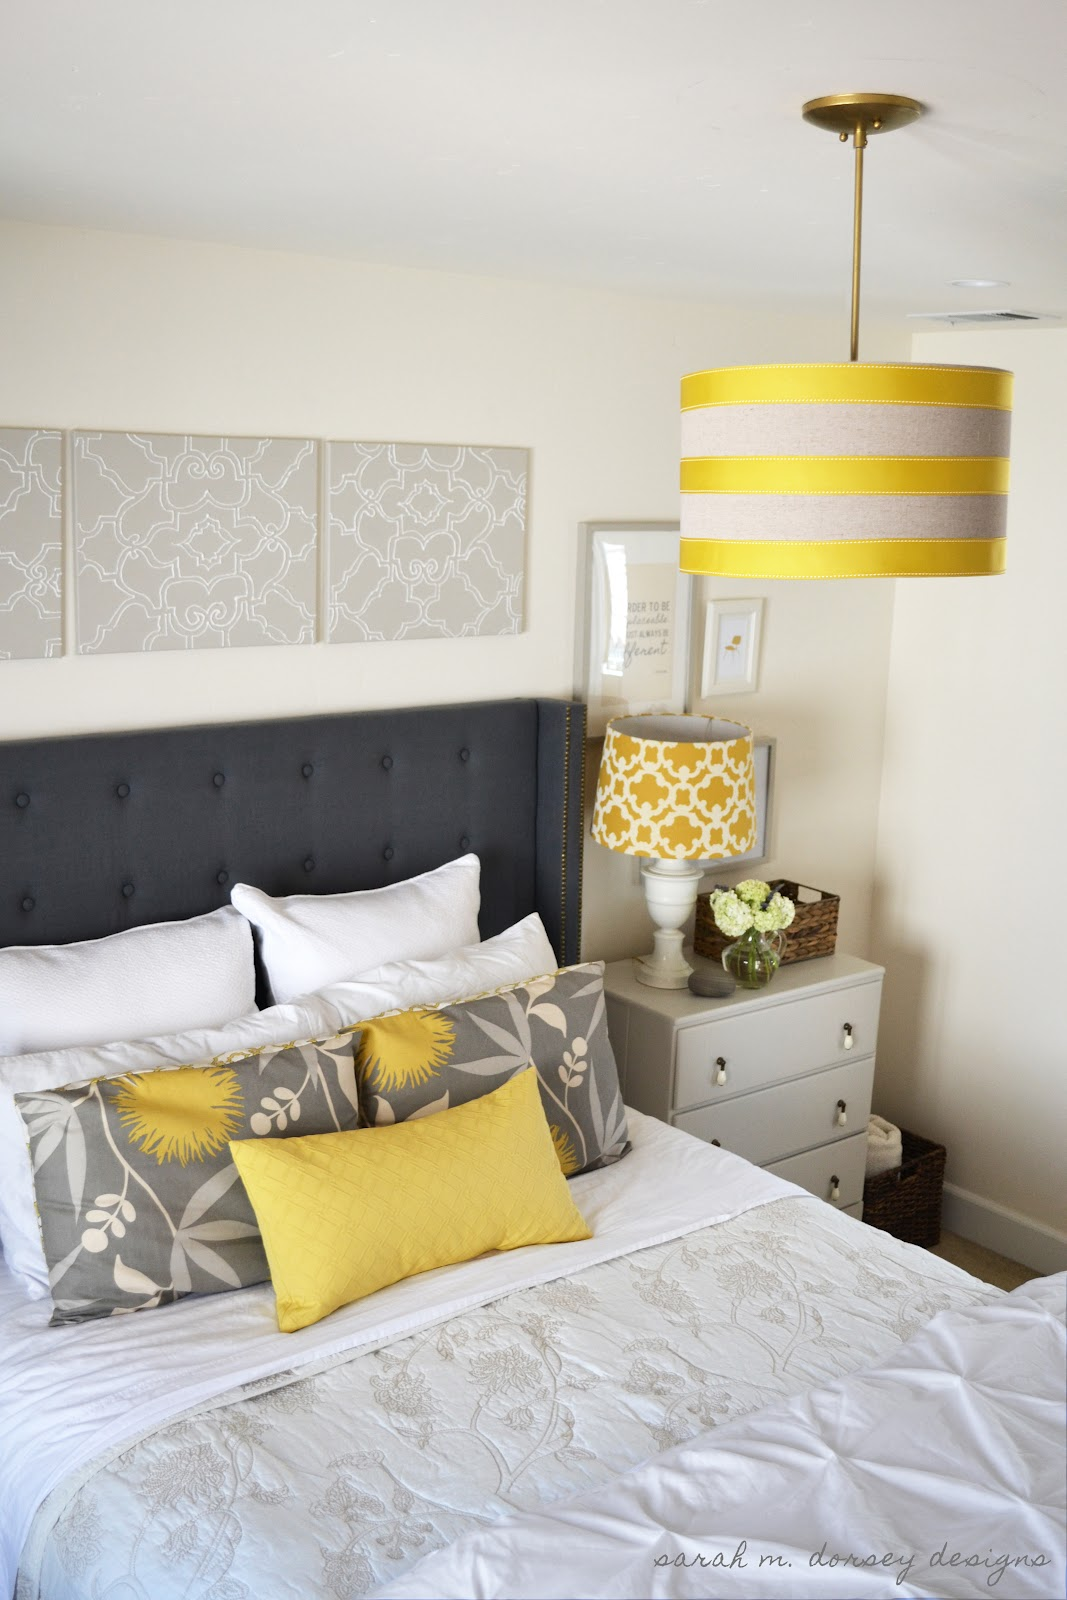 Sarah M Dorsey Designs Art Above The Headboard Finished